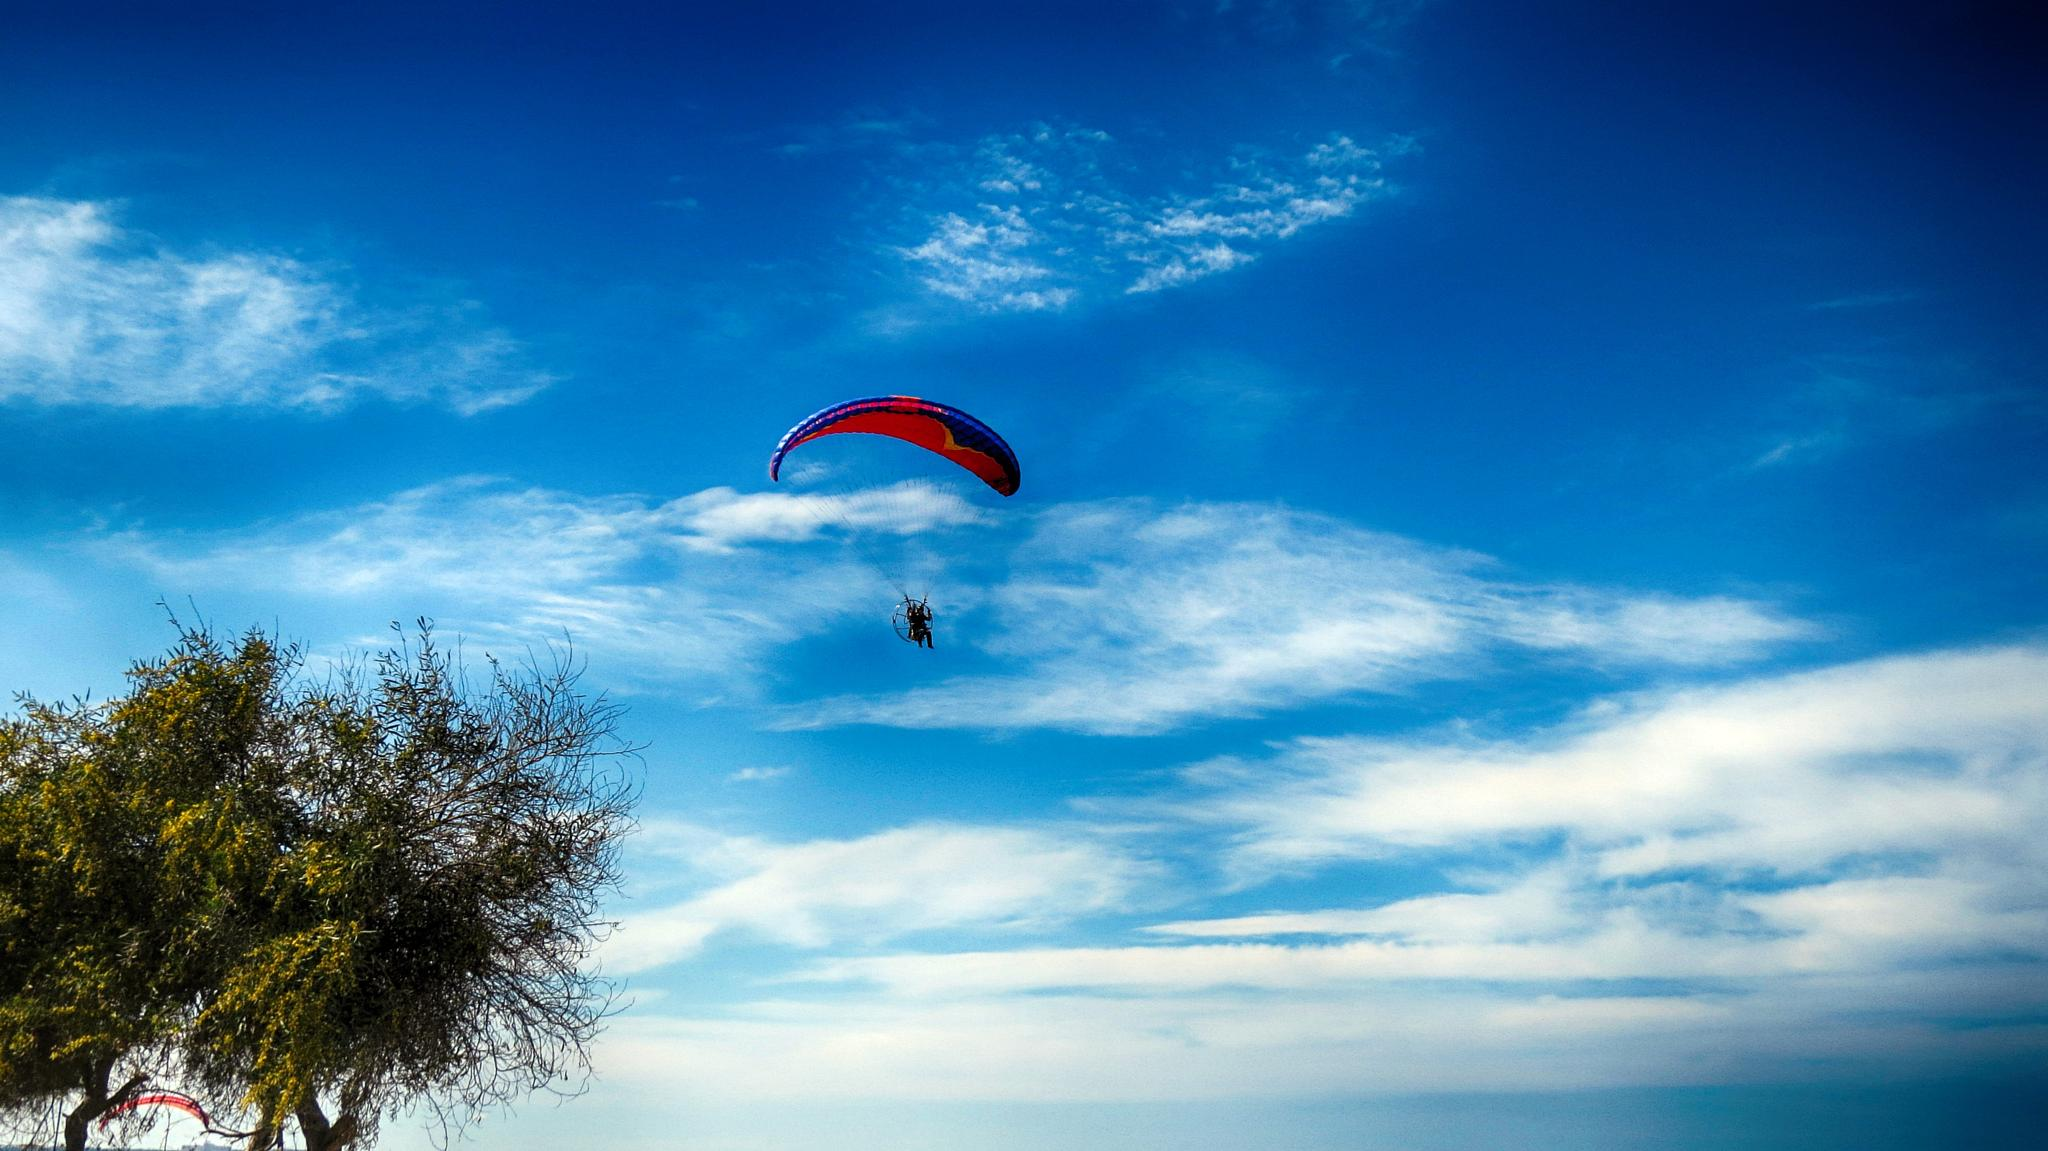 Paragliding by SOGUKPINAR